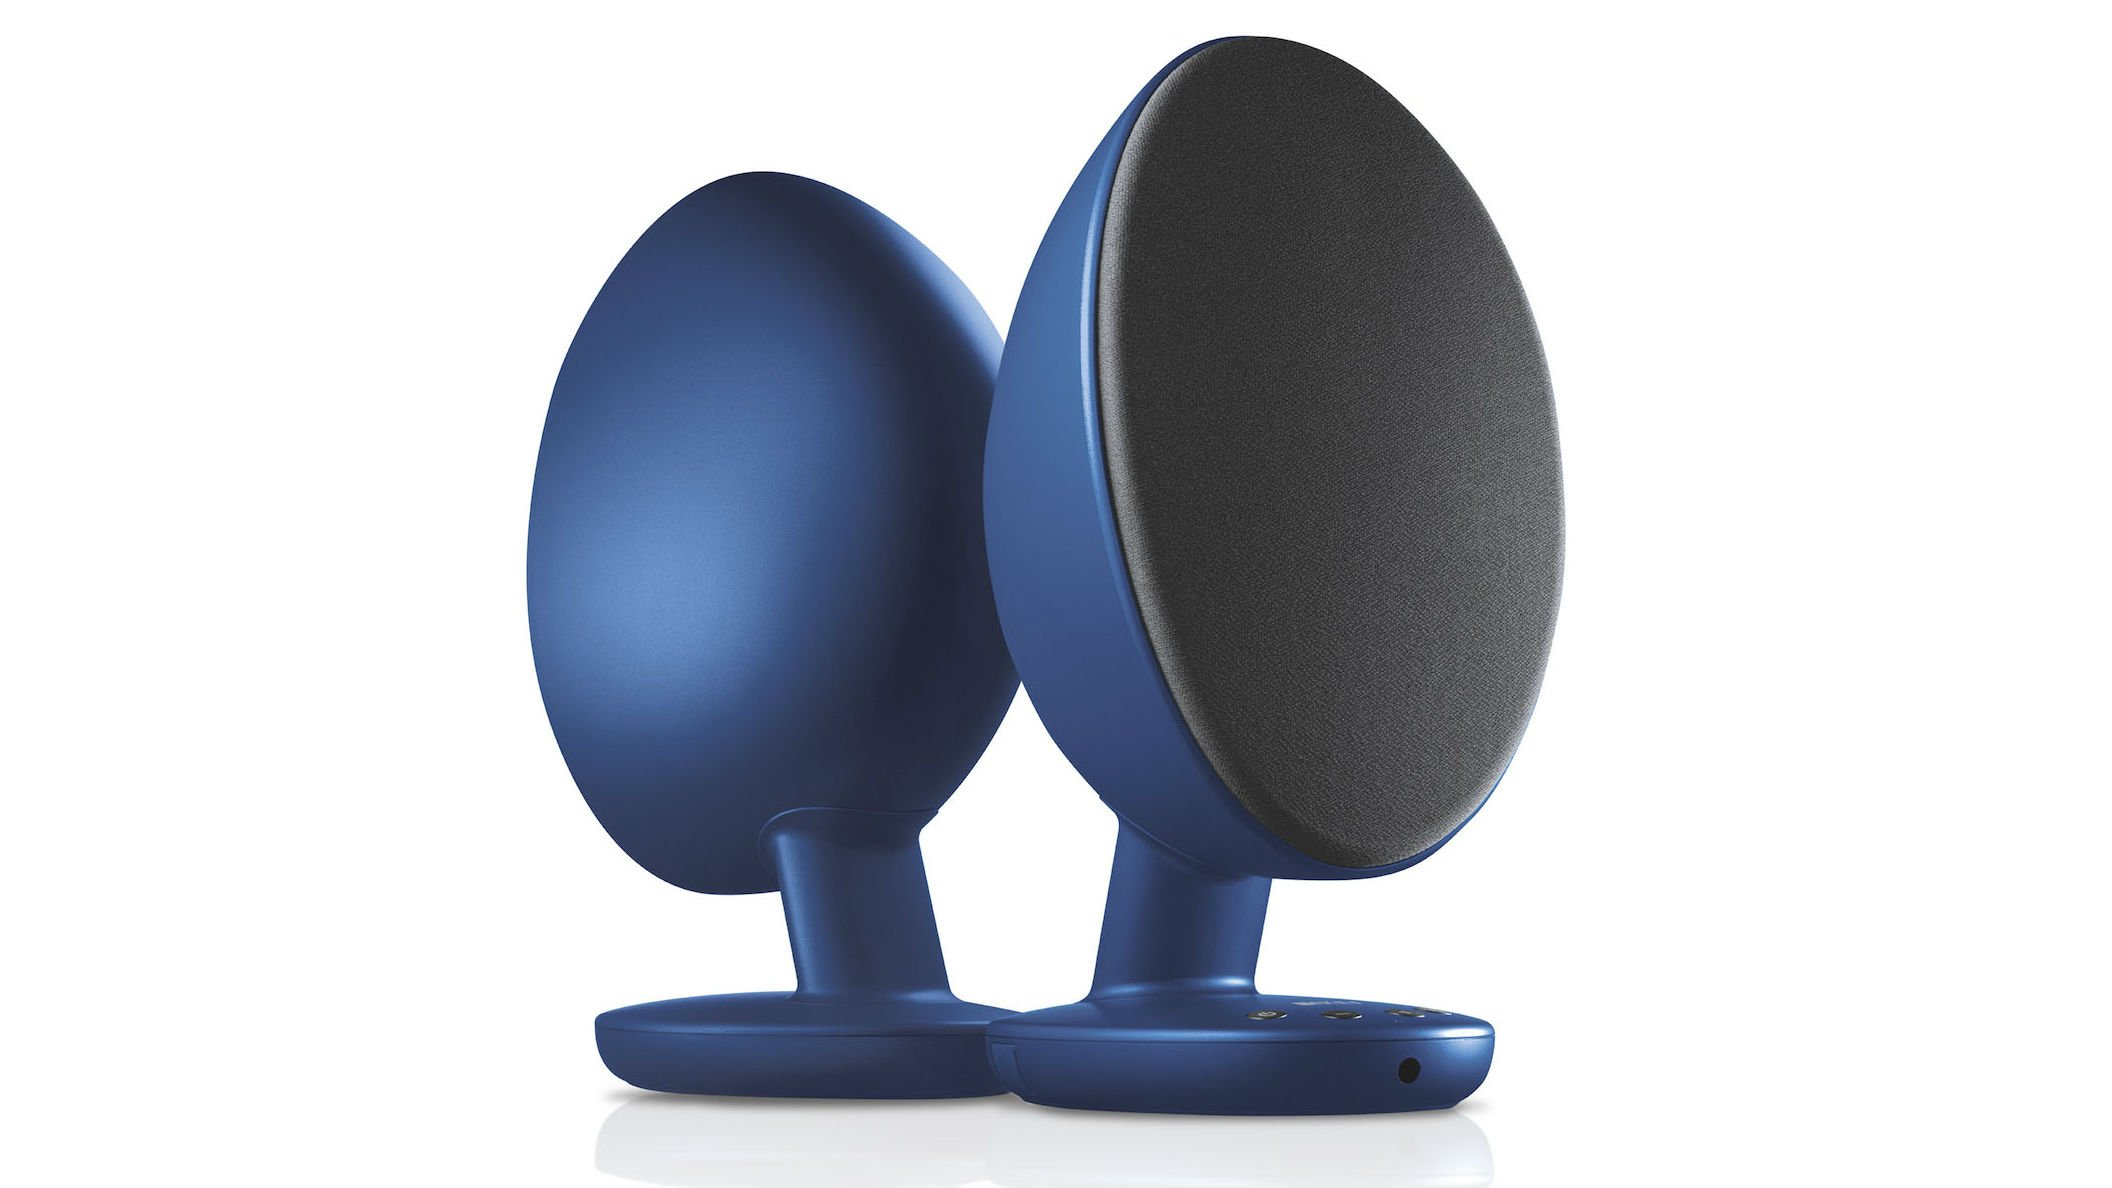 Best Pc Speakers 2018 The Black Friday Deals For Gaming And Hi Fi Speaker System Kefs Trademark Egg Design Is Certainly Eye Catching But Its Not Just Show Do A Really Good Job Of Radiating Sound All Around